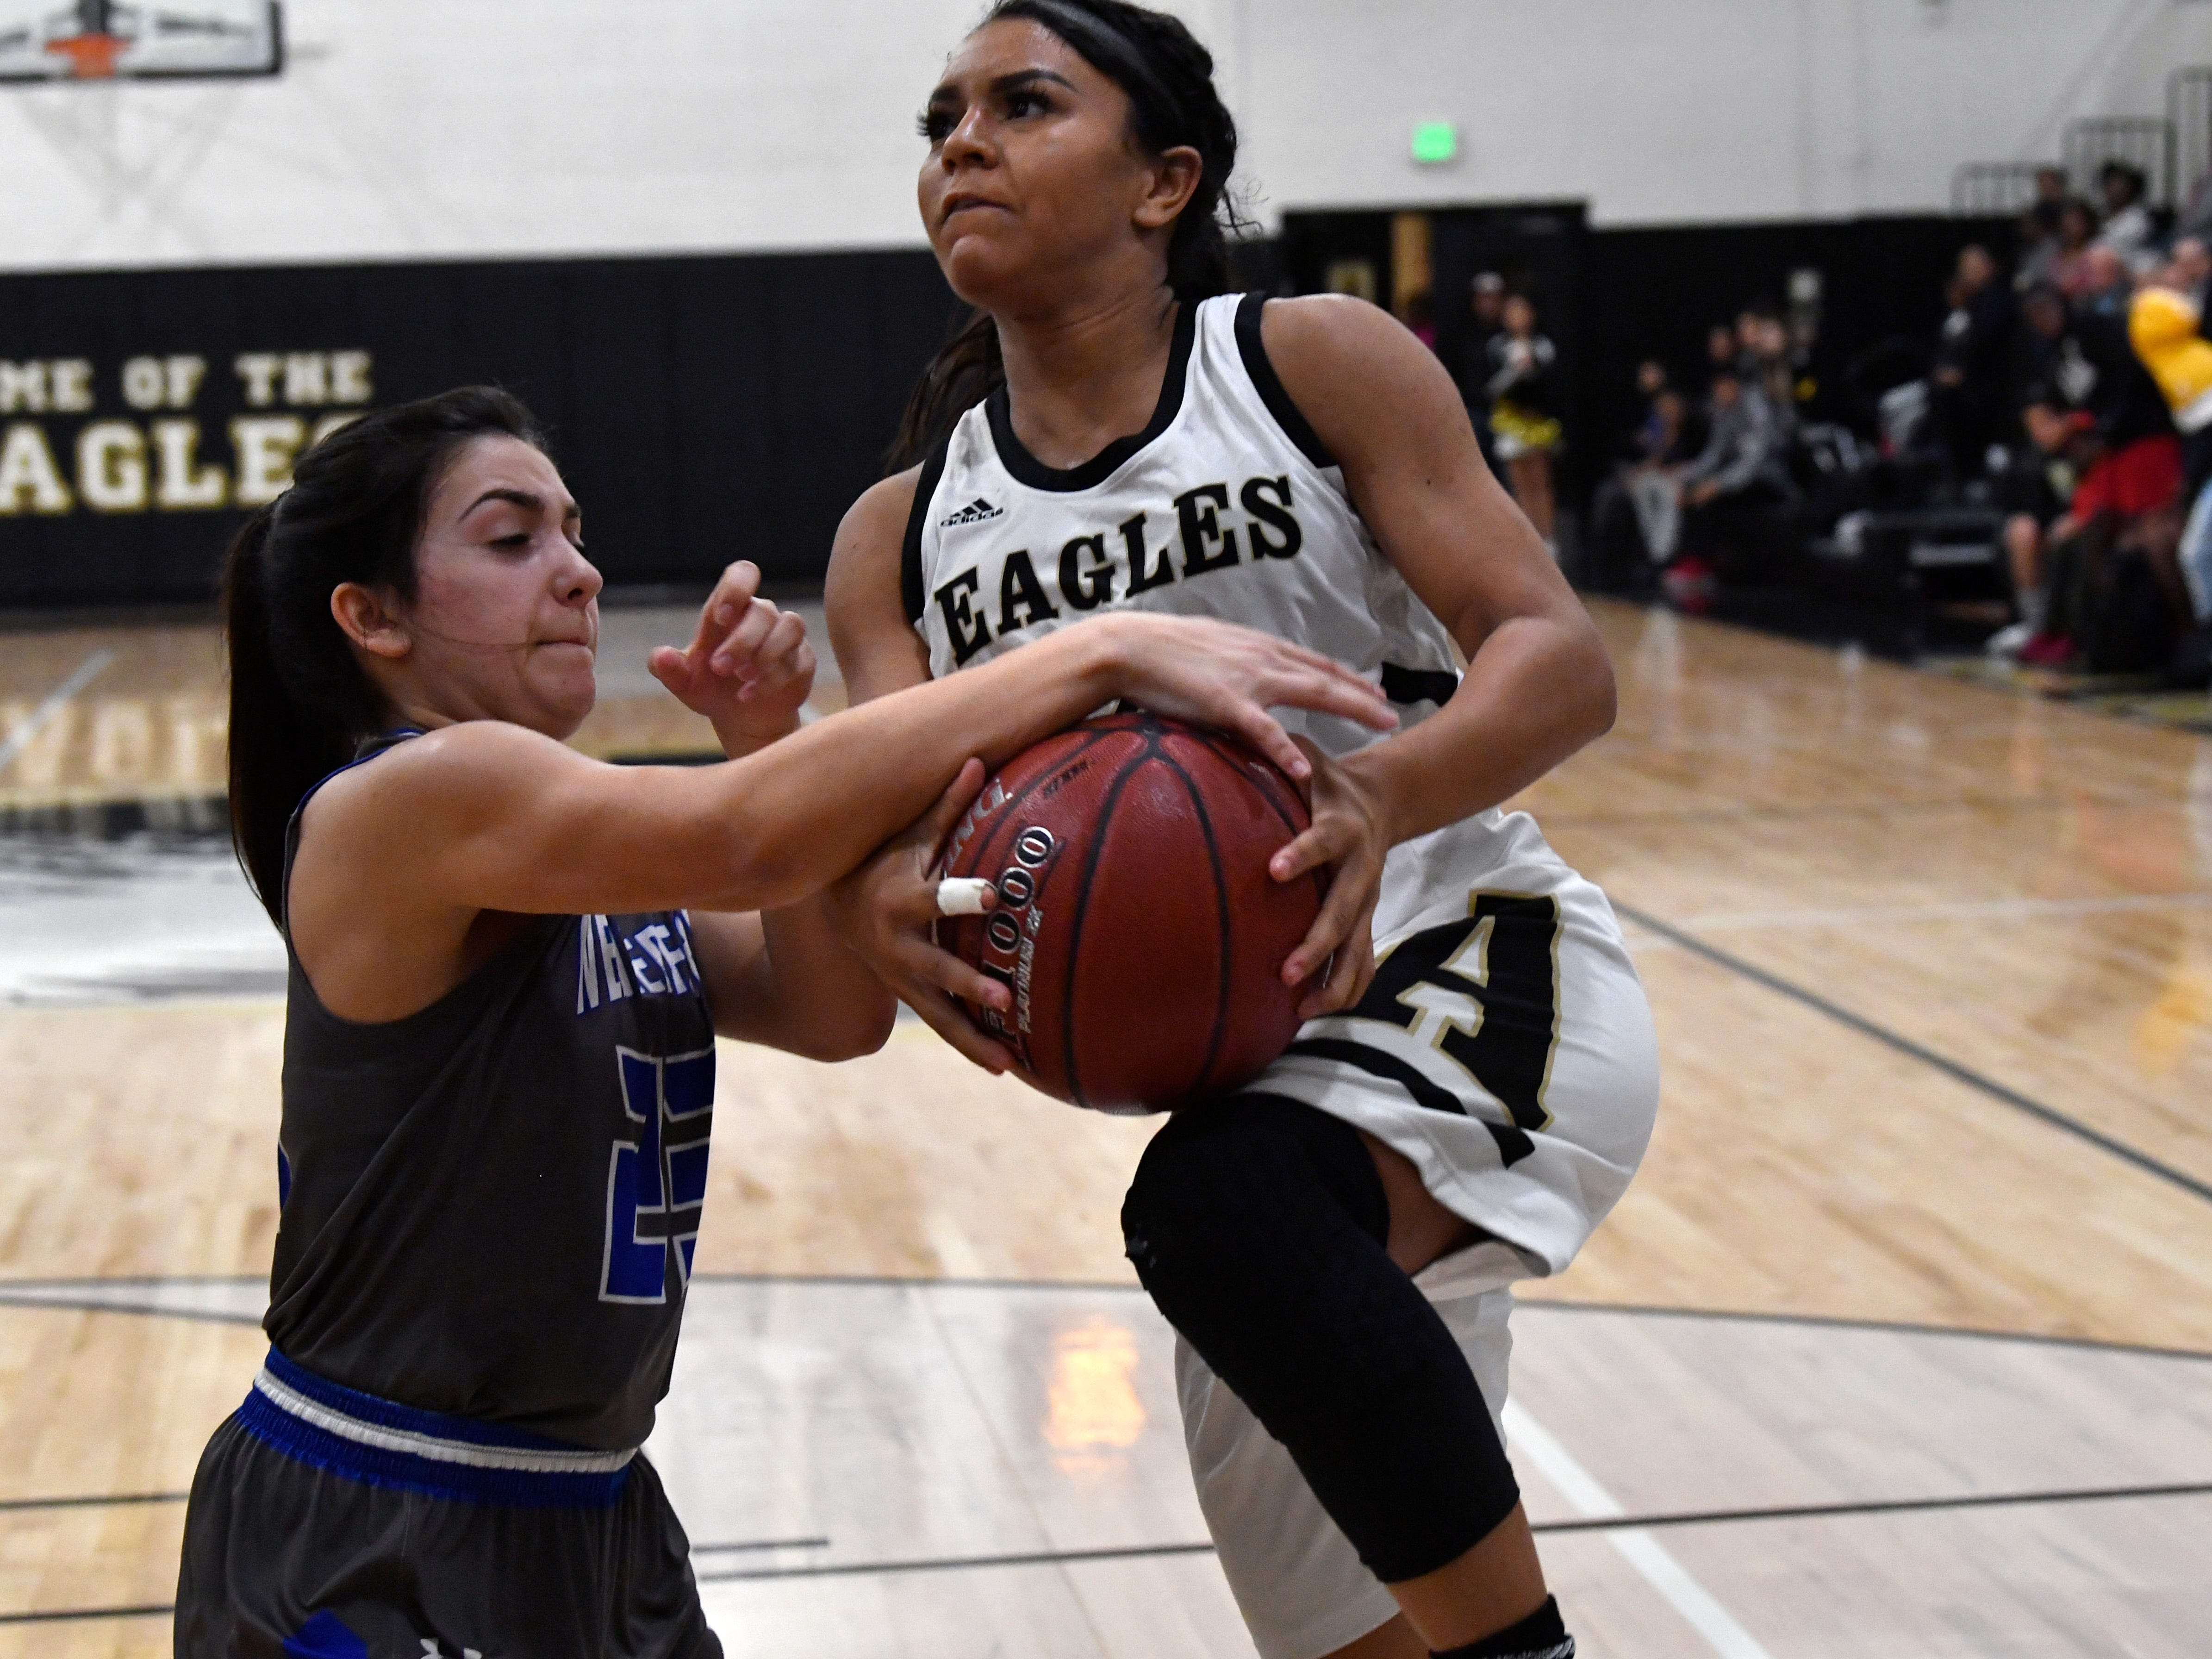 Abilene High's Alyssa Washington is fouled by Weatherford's Sydney Steffler during Friday's game in the Eagle Gym Jan. 11, 2019. Final score was 51-38, Abilene.